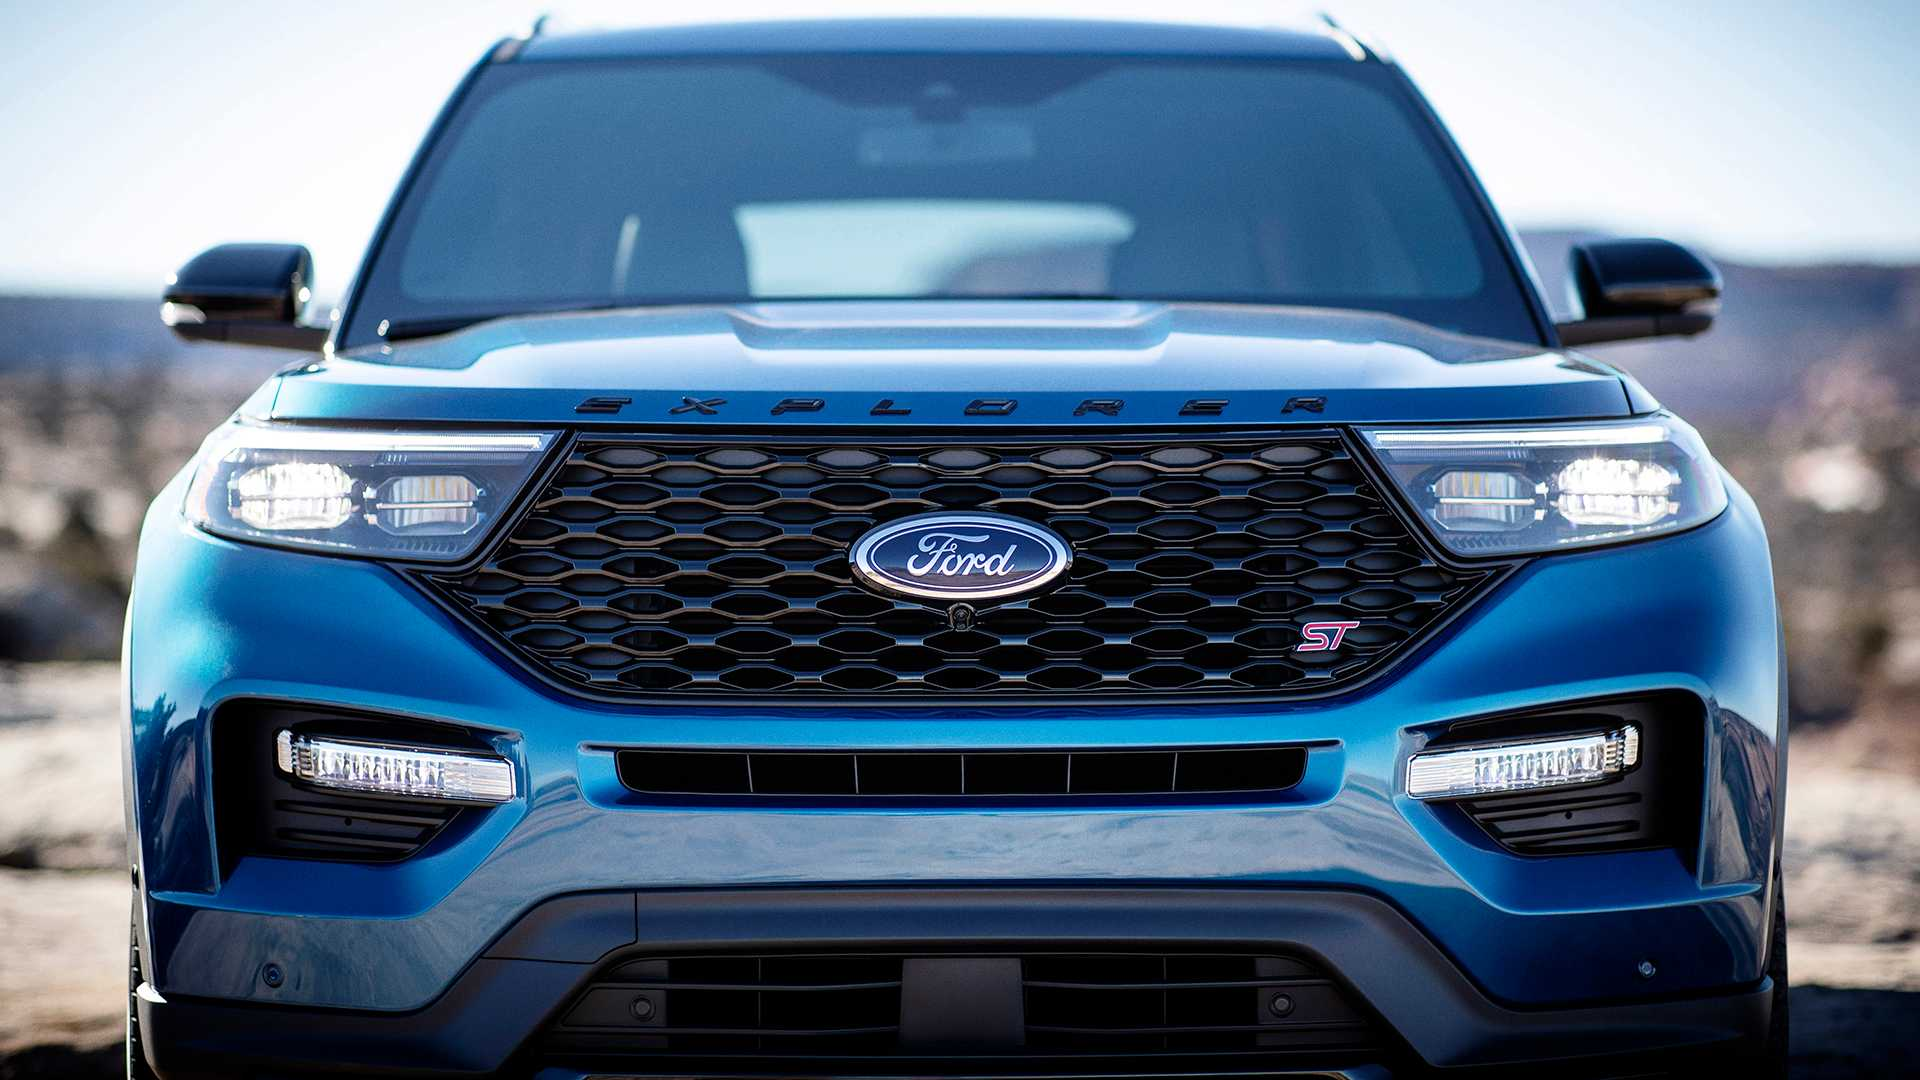 62 The Best Price Of 2020 Ford Explorer New Review